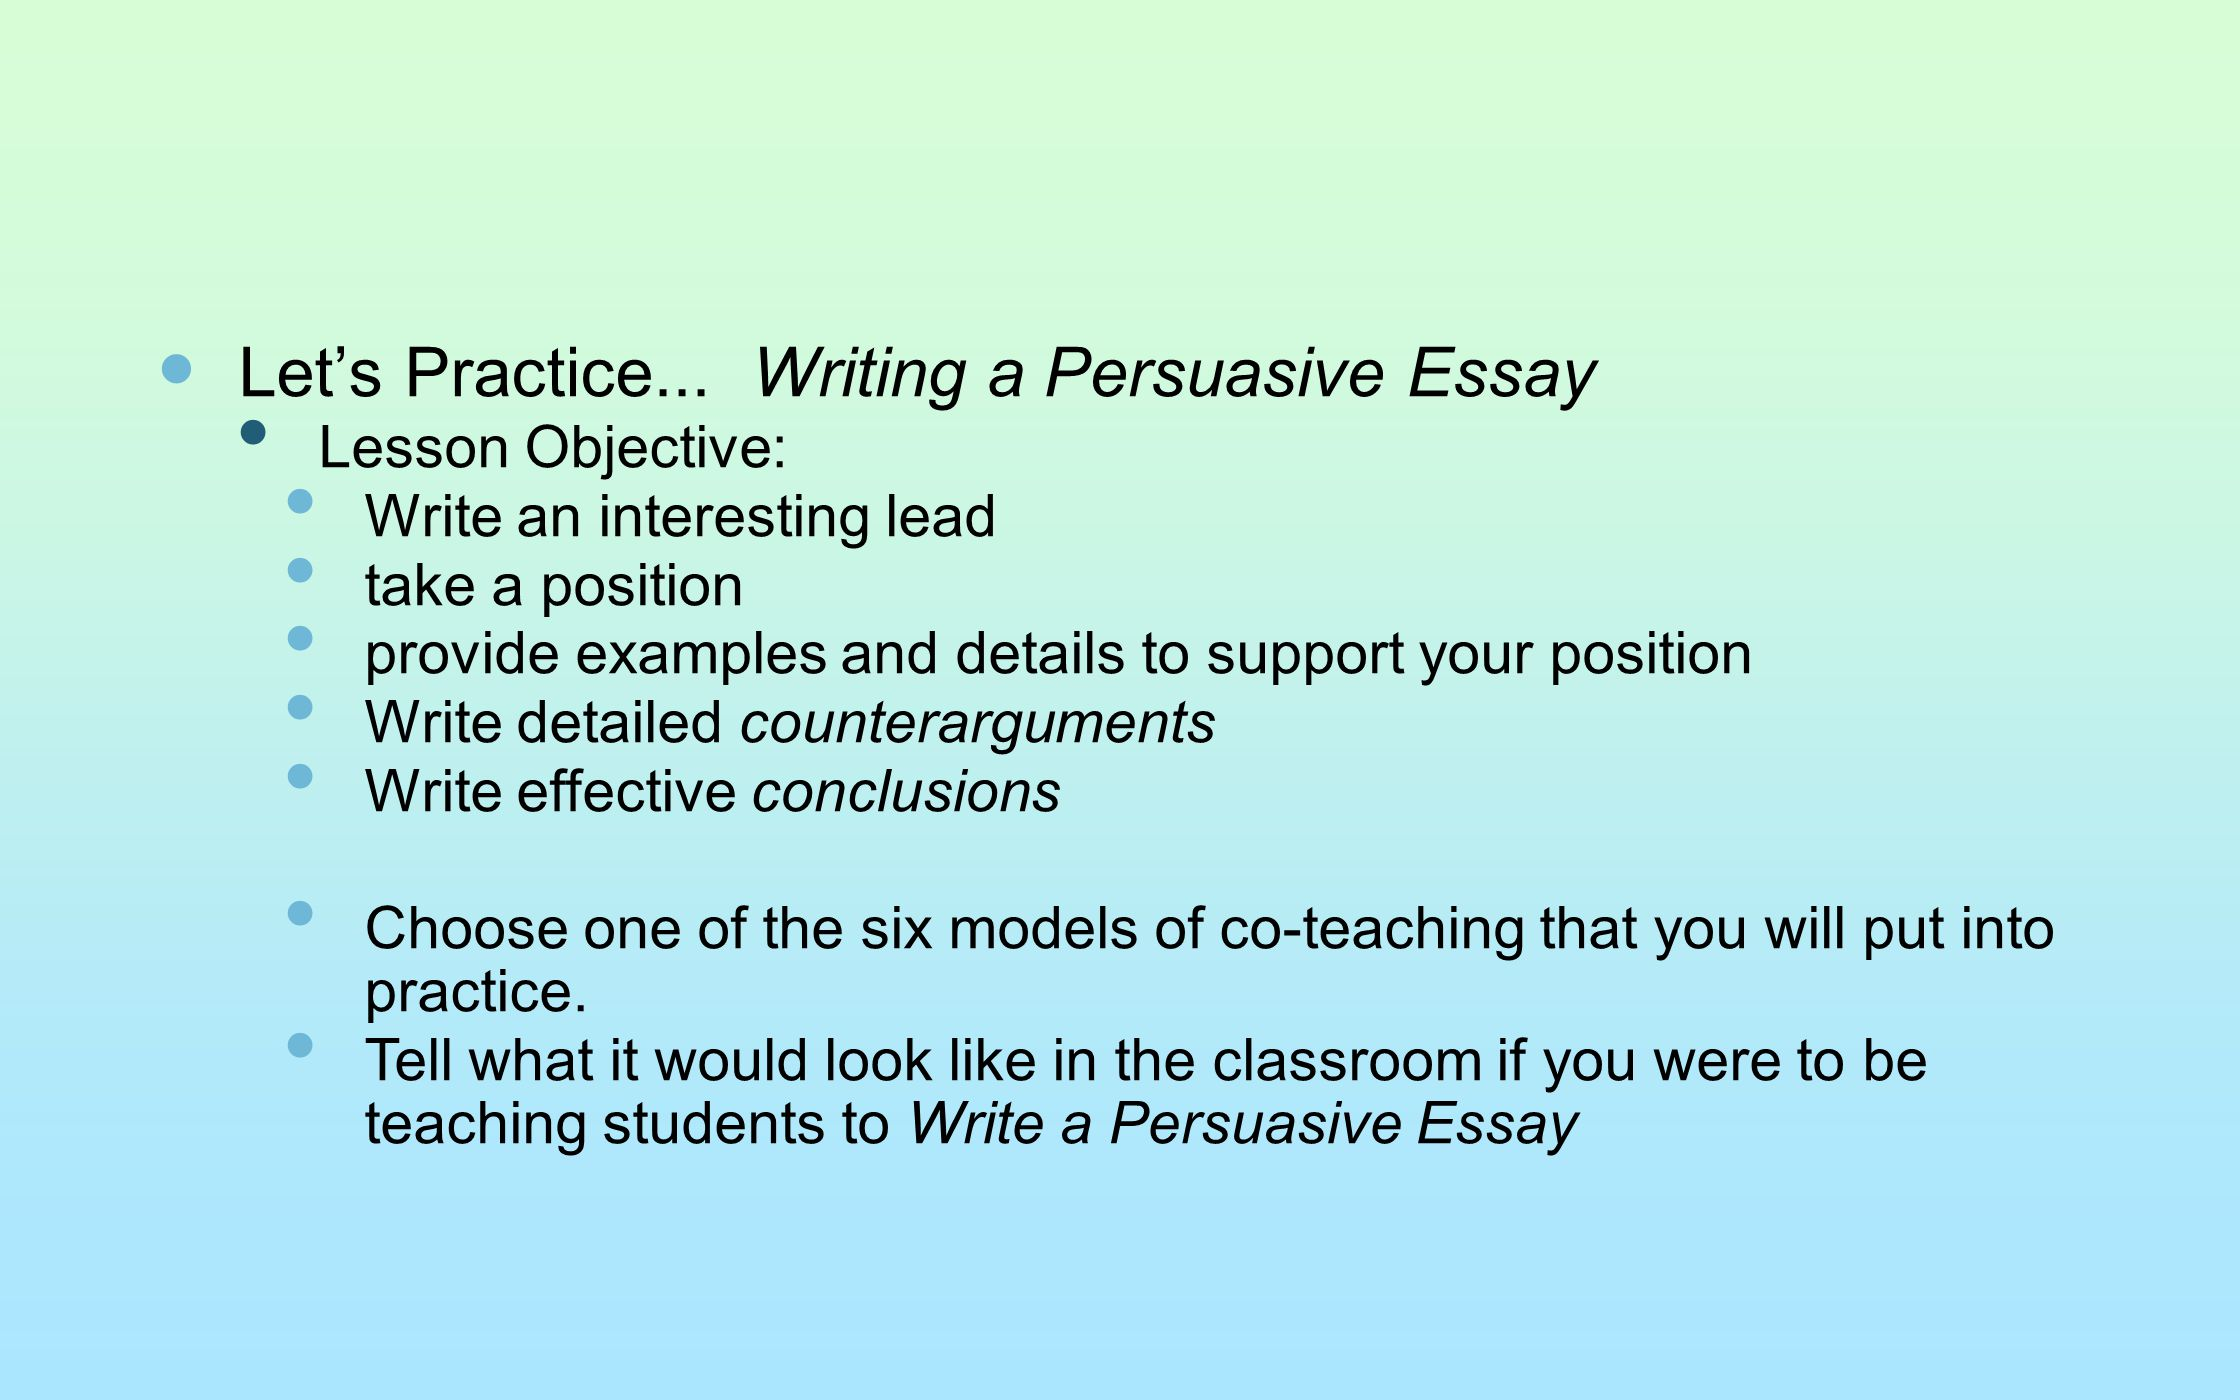 Let's Practice... Writing a Persuasive Essay Lesson Objective: Write an interesting lead take a position provide examples and details to support your